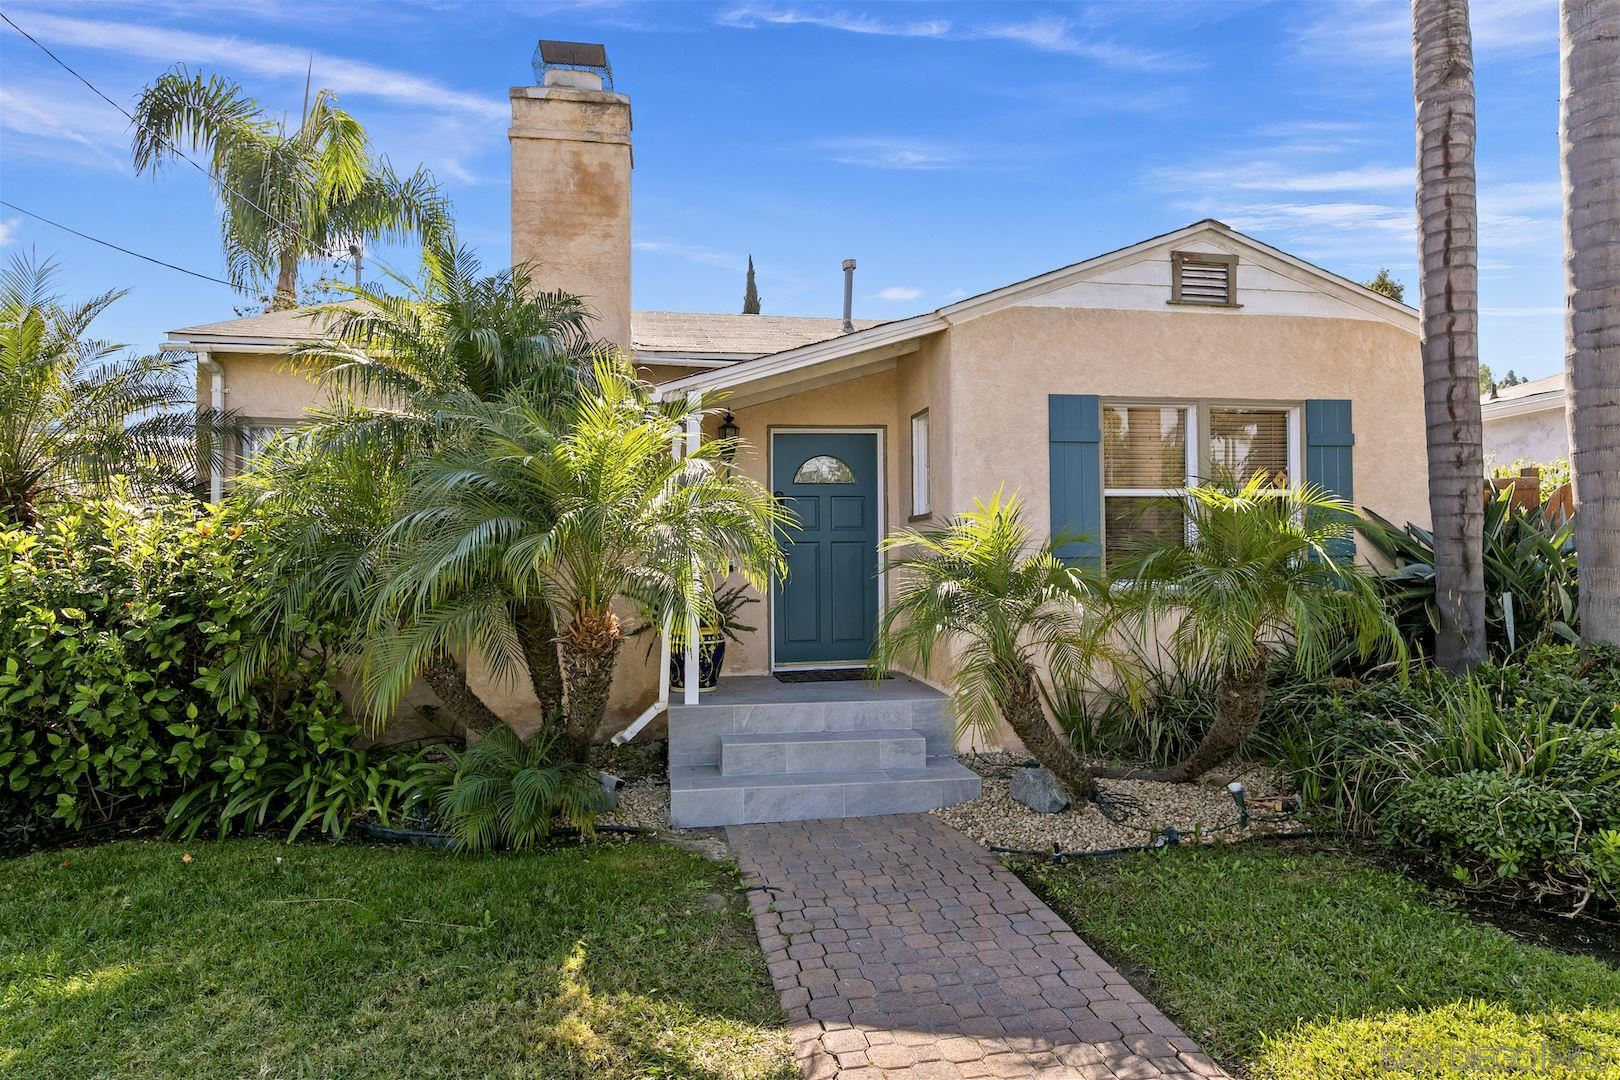 Photo for 3687 Madison Ave, San Diego, CA 92116 (MLS # 200050756)